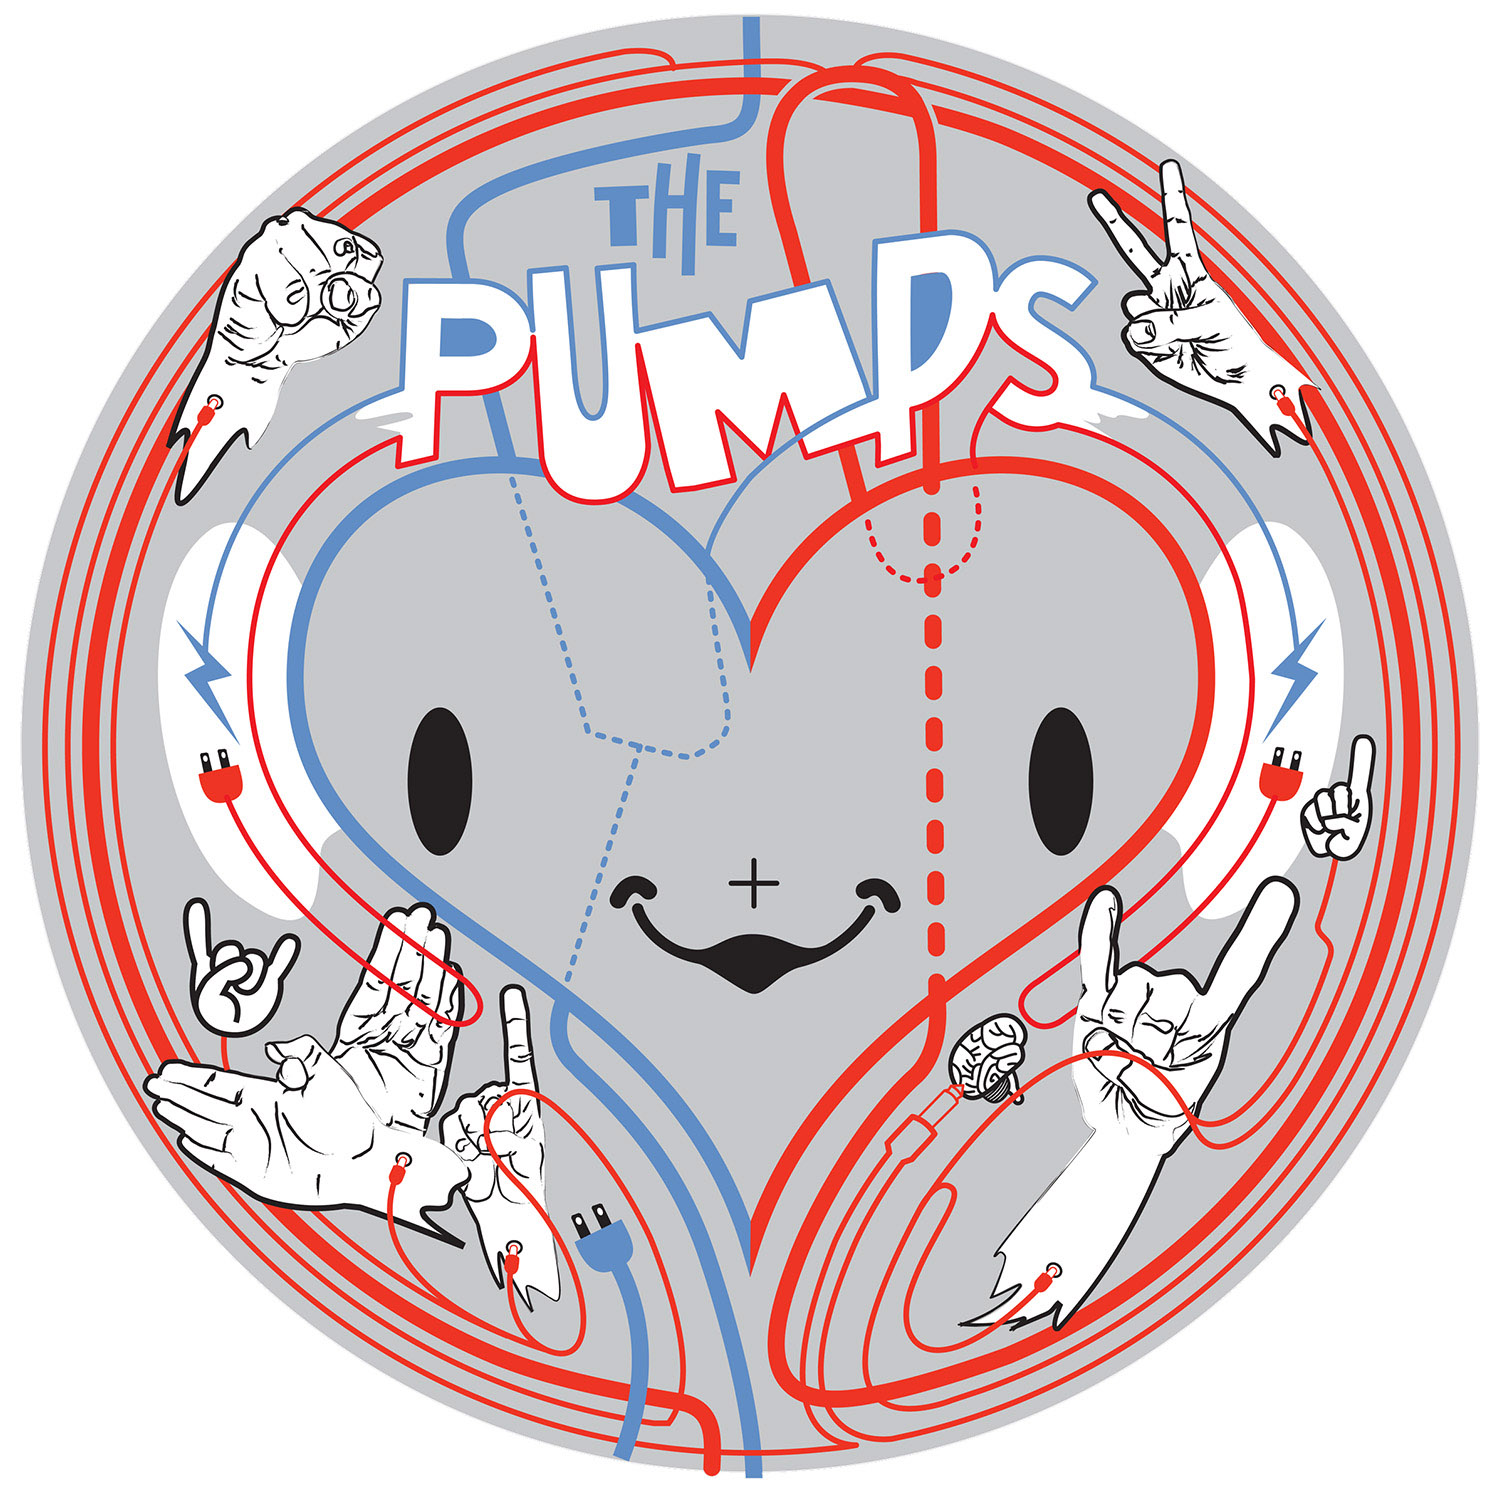 Illustration for interactive heart drum.